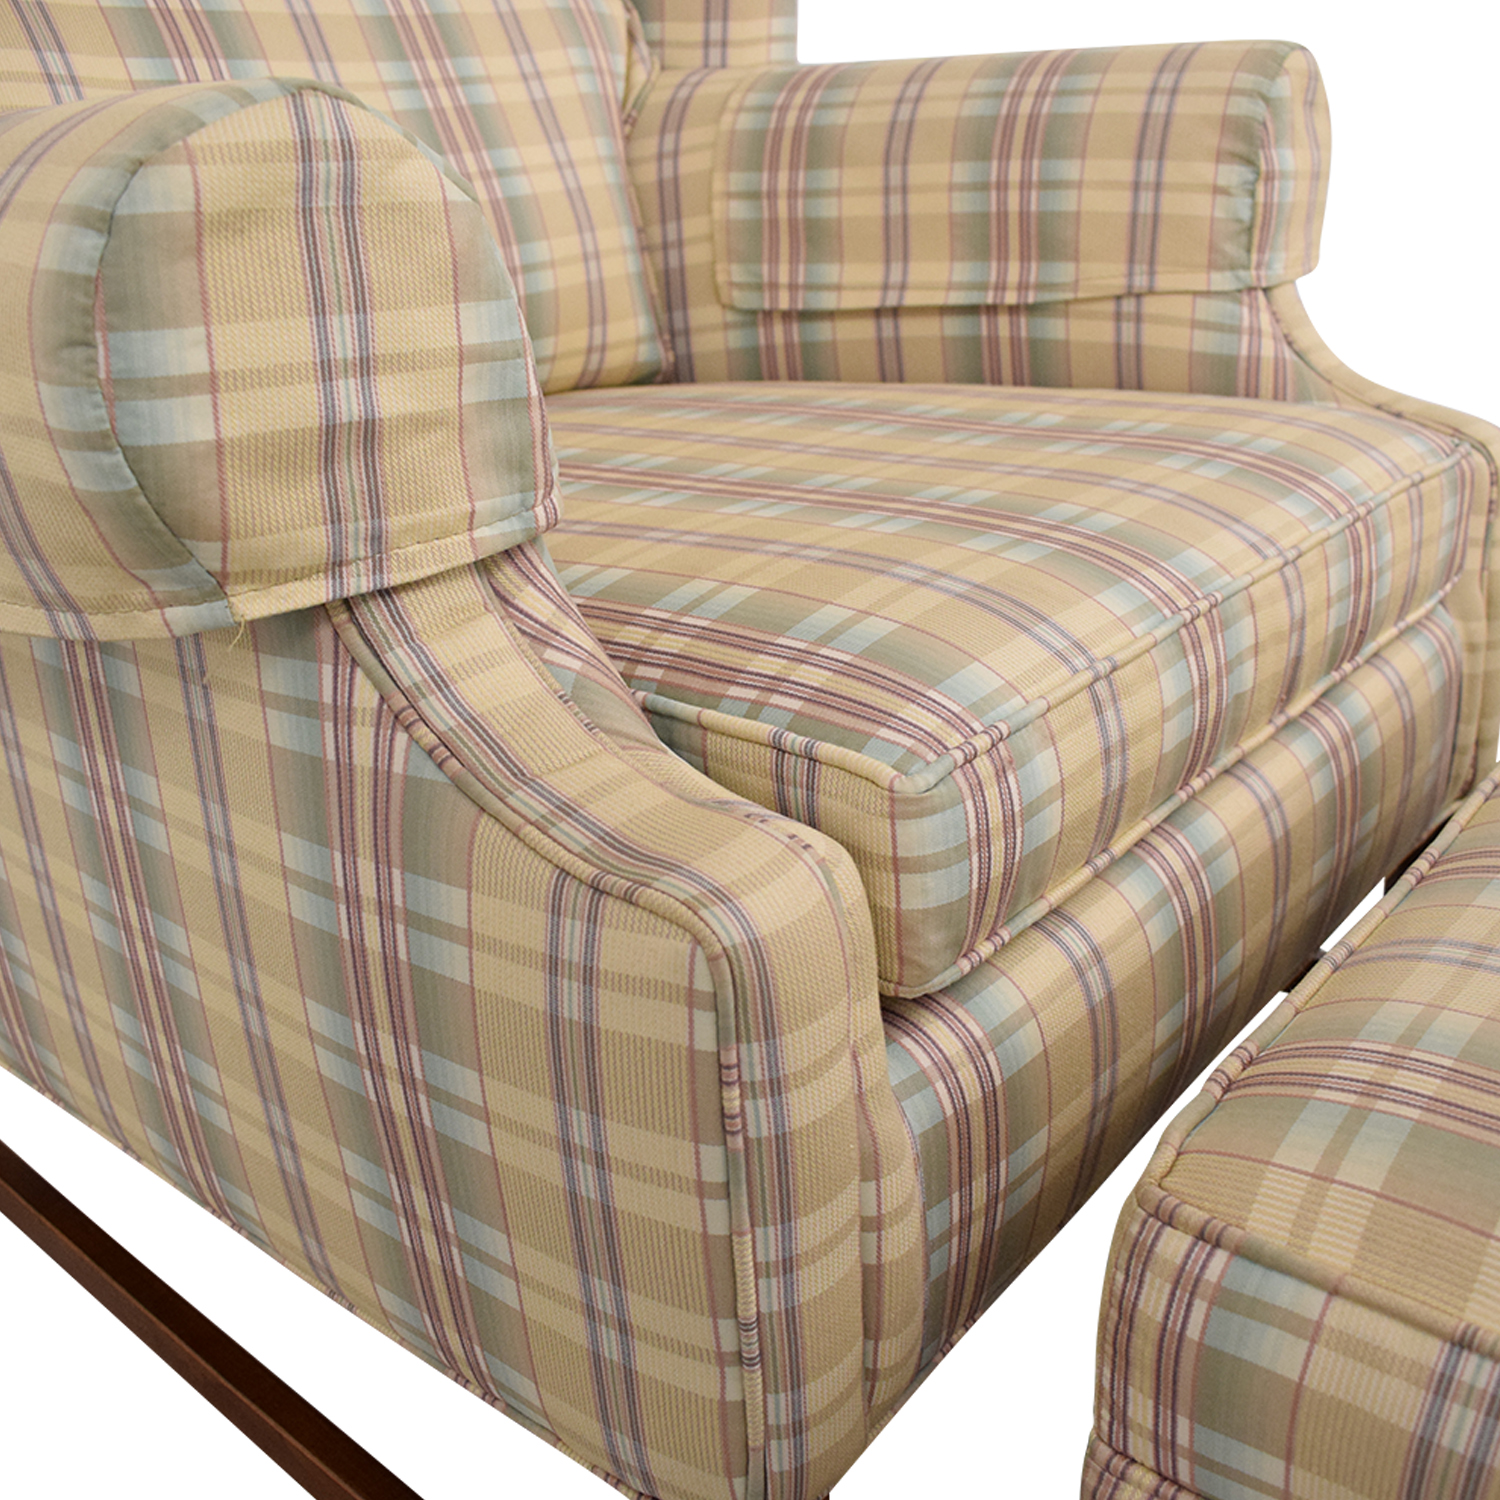 Ethan Allen Plaid Wingback Chair and Ottoman / Accent Chairs